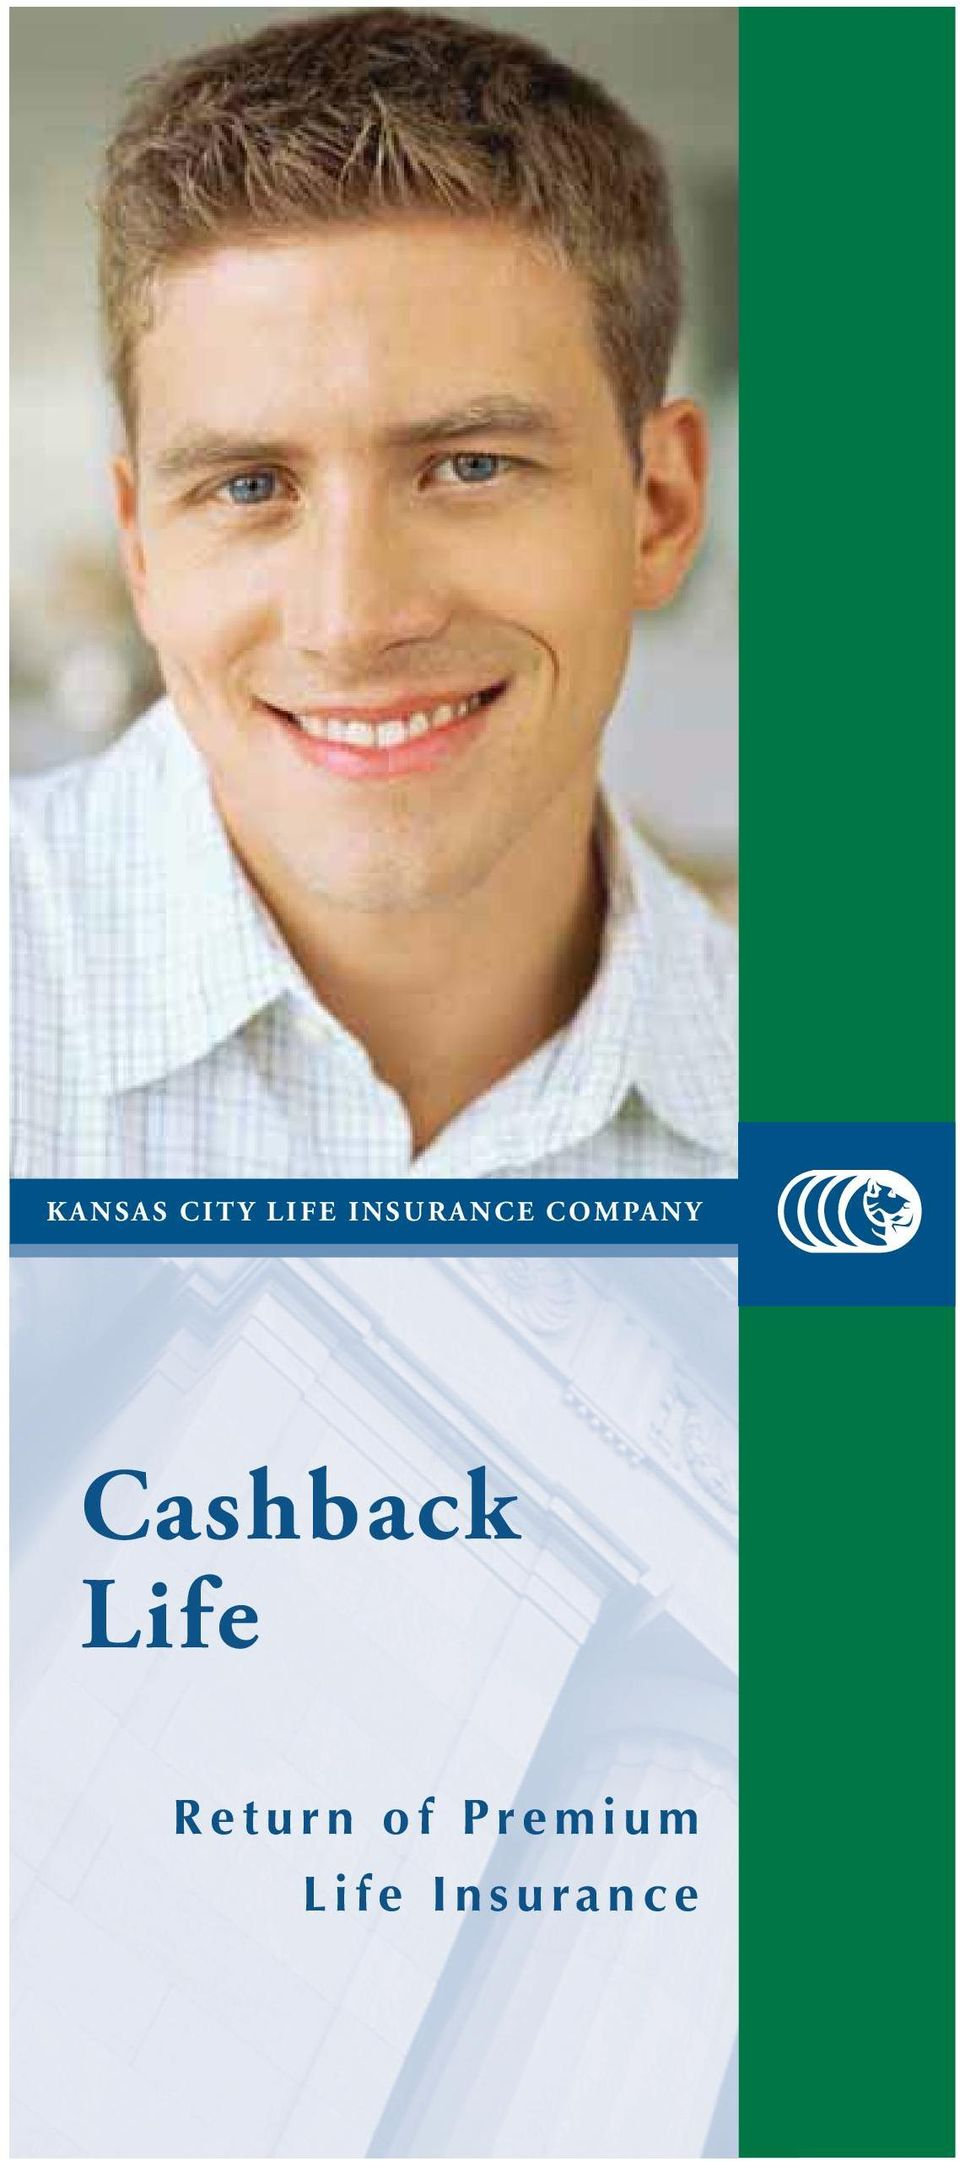 Cashback Life Return